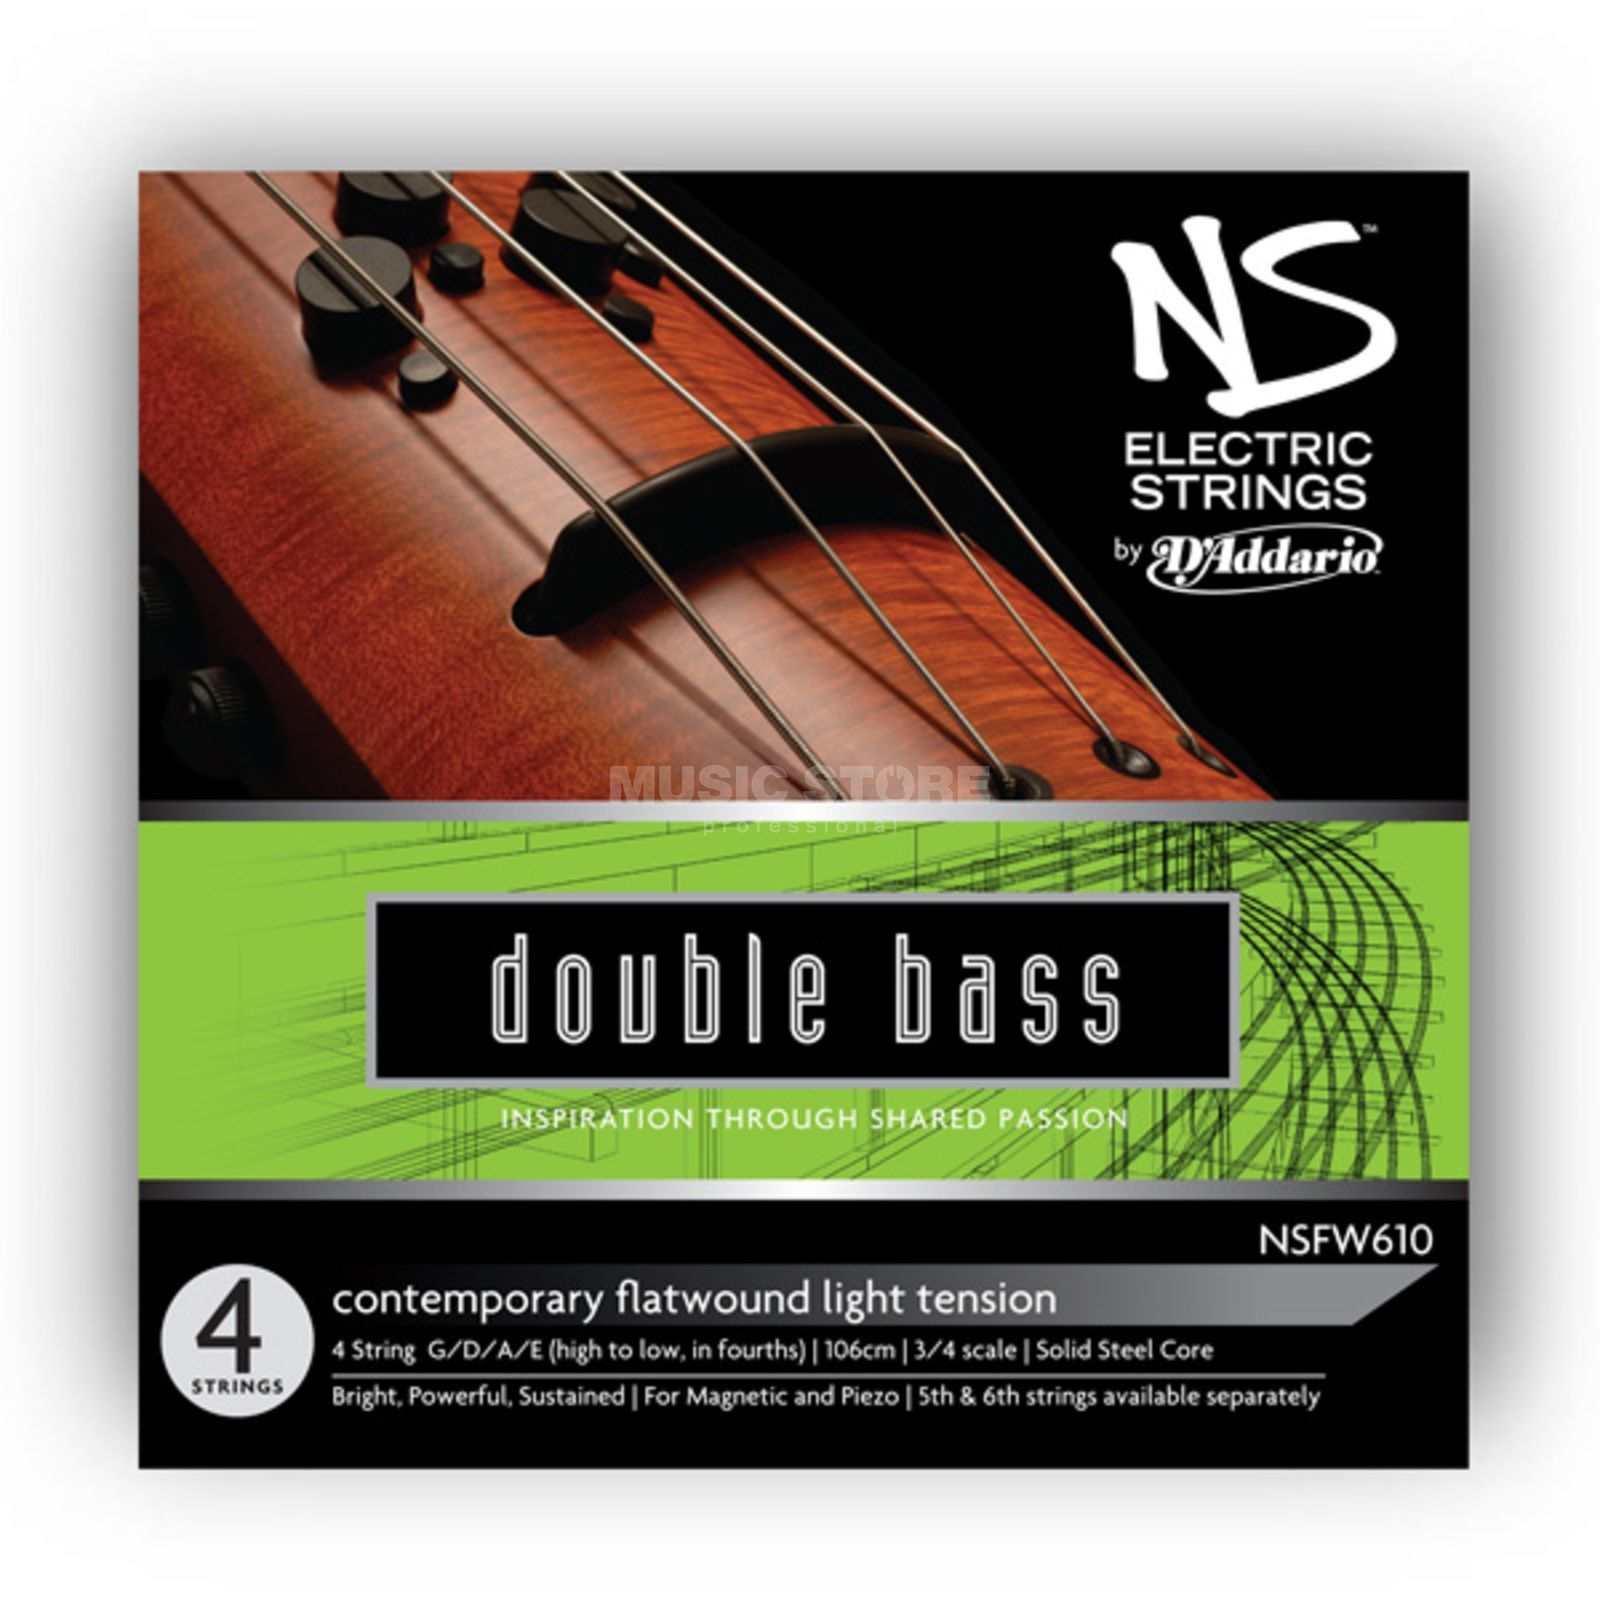 D'Addario NSFW610 E-Contemporary set 3/4 Scale, Medium Tension Productafbeelding